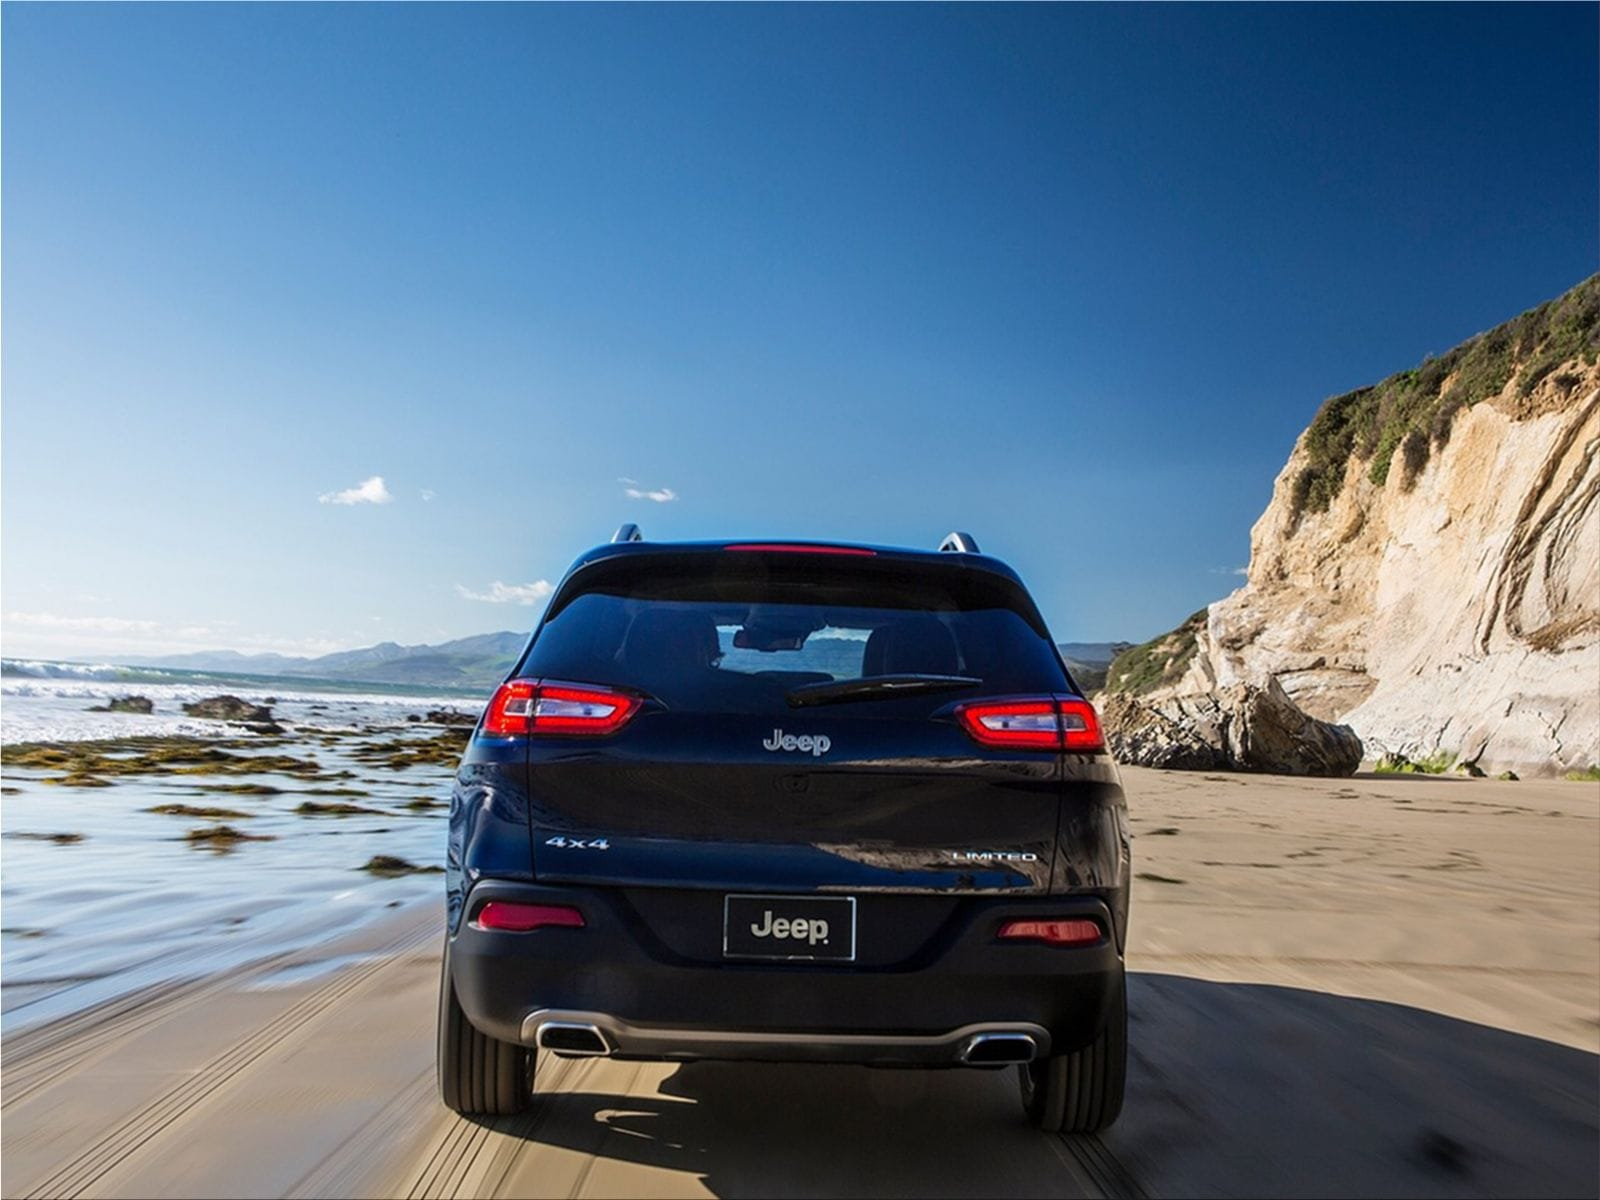 The 2.4 Liter Tigershark MultiAir 2 I 4 Engine Comes Standard In The  All New 2014 Jeep Cherokee. The 2.4 Liter Tigershark Engine Offers Up To An  31 Mpg ...